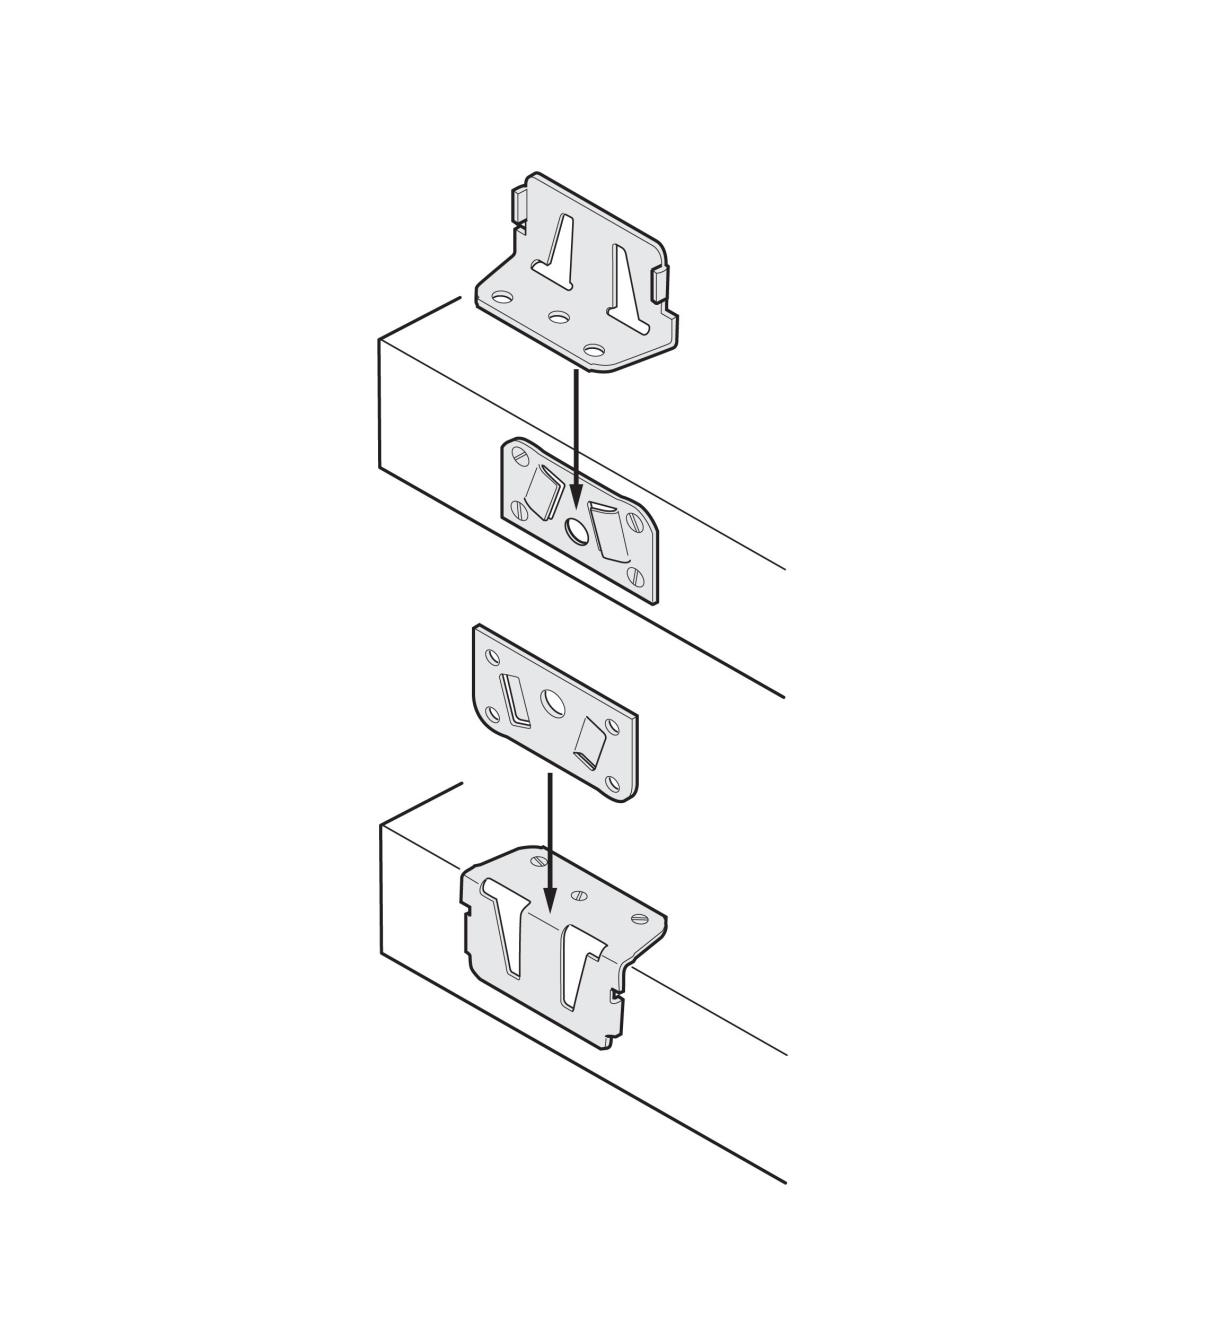 00S1710 - Right-Angle Joiners, 2 pairs